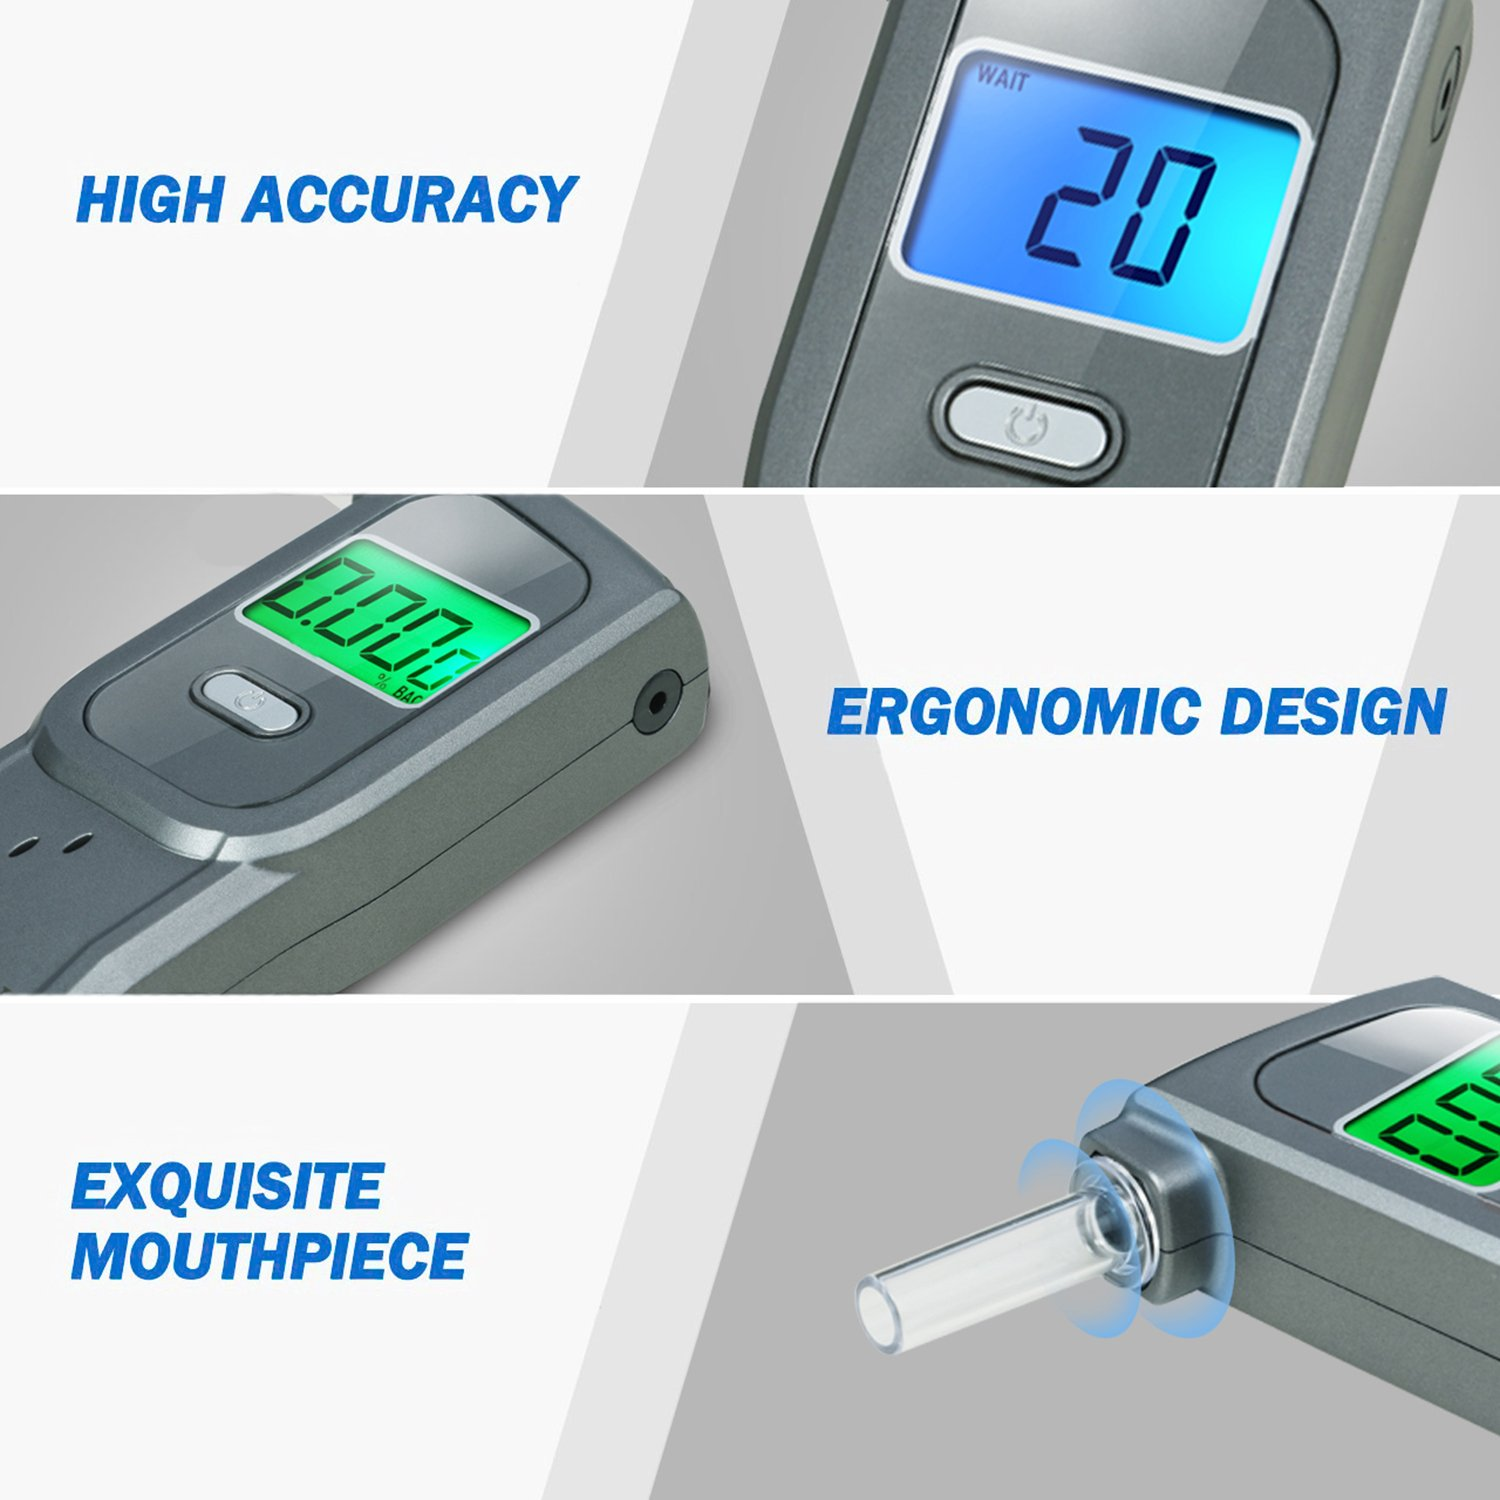 GDbow PortableBreathalyzer AlcoholTester Recording 32 Testing Results with 5 Mouthpieces for Personal Use -Grey by GDbow (Image #8)